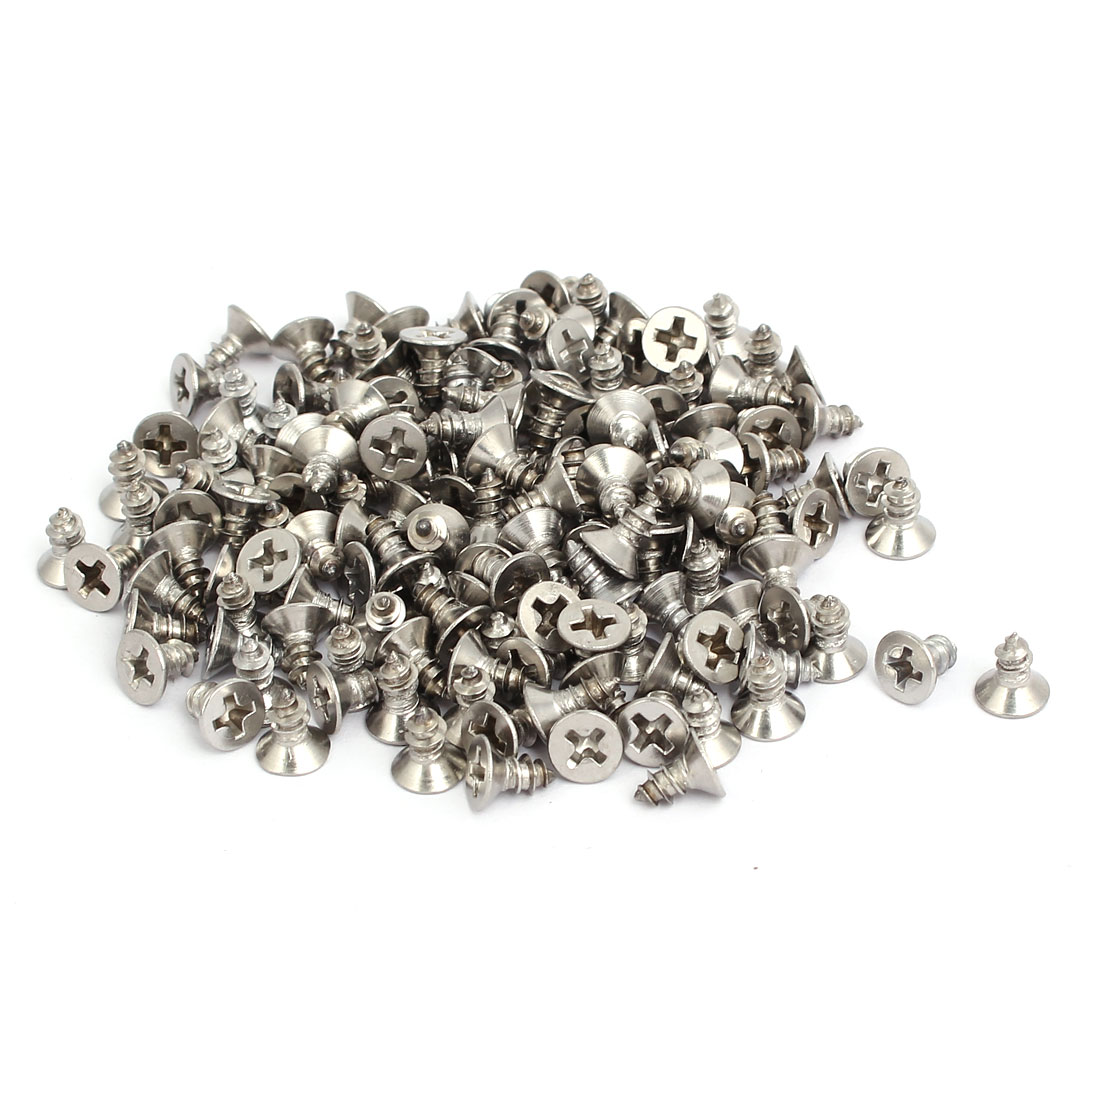 M4x8mm 304 Stainless Steel Phillips Drive Flat Head Self Tapping Screws 150pcs